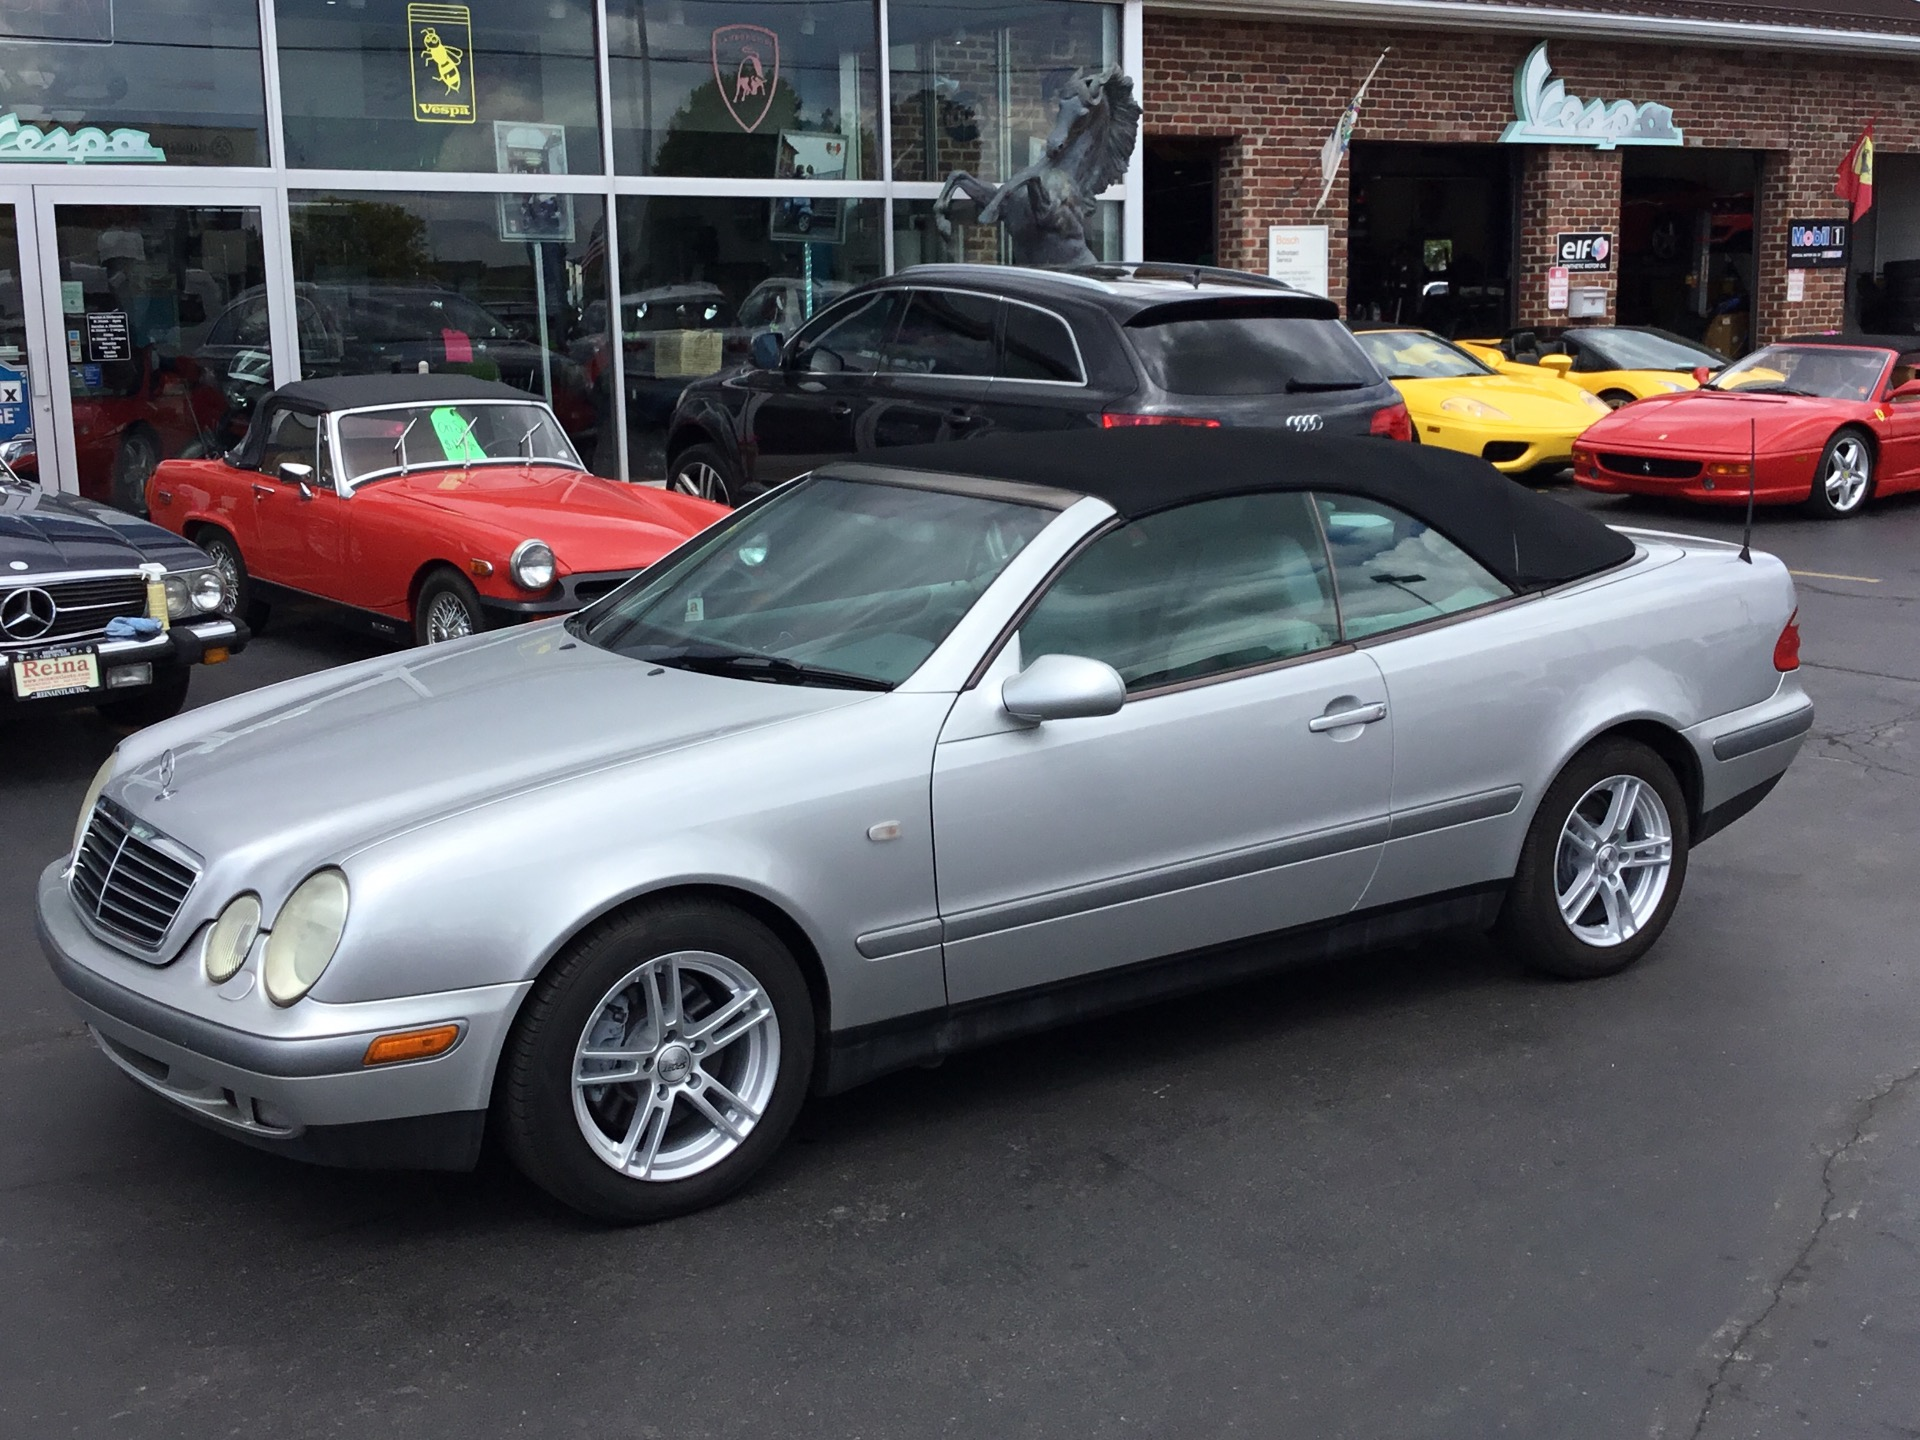 1999 mercedes benz clk class clk 320 stock 9229 for sale. Black Bedroom Furniture Sets. Home Design Ideas